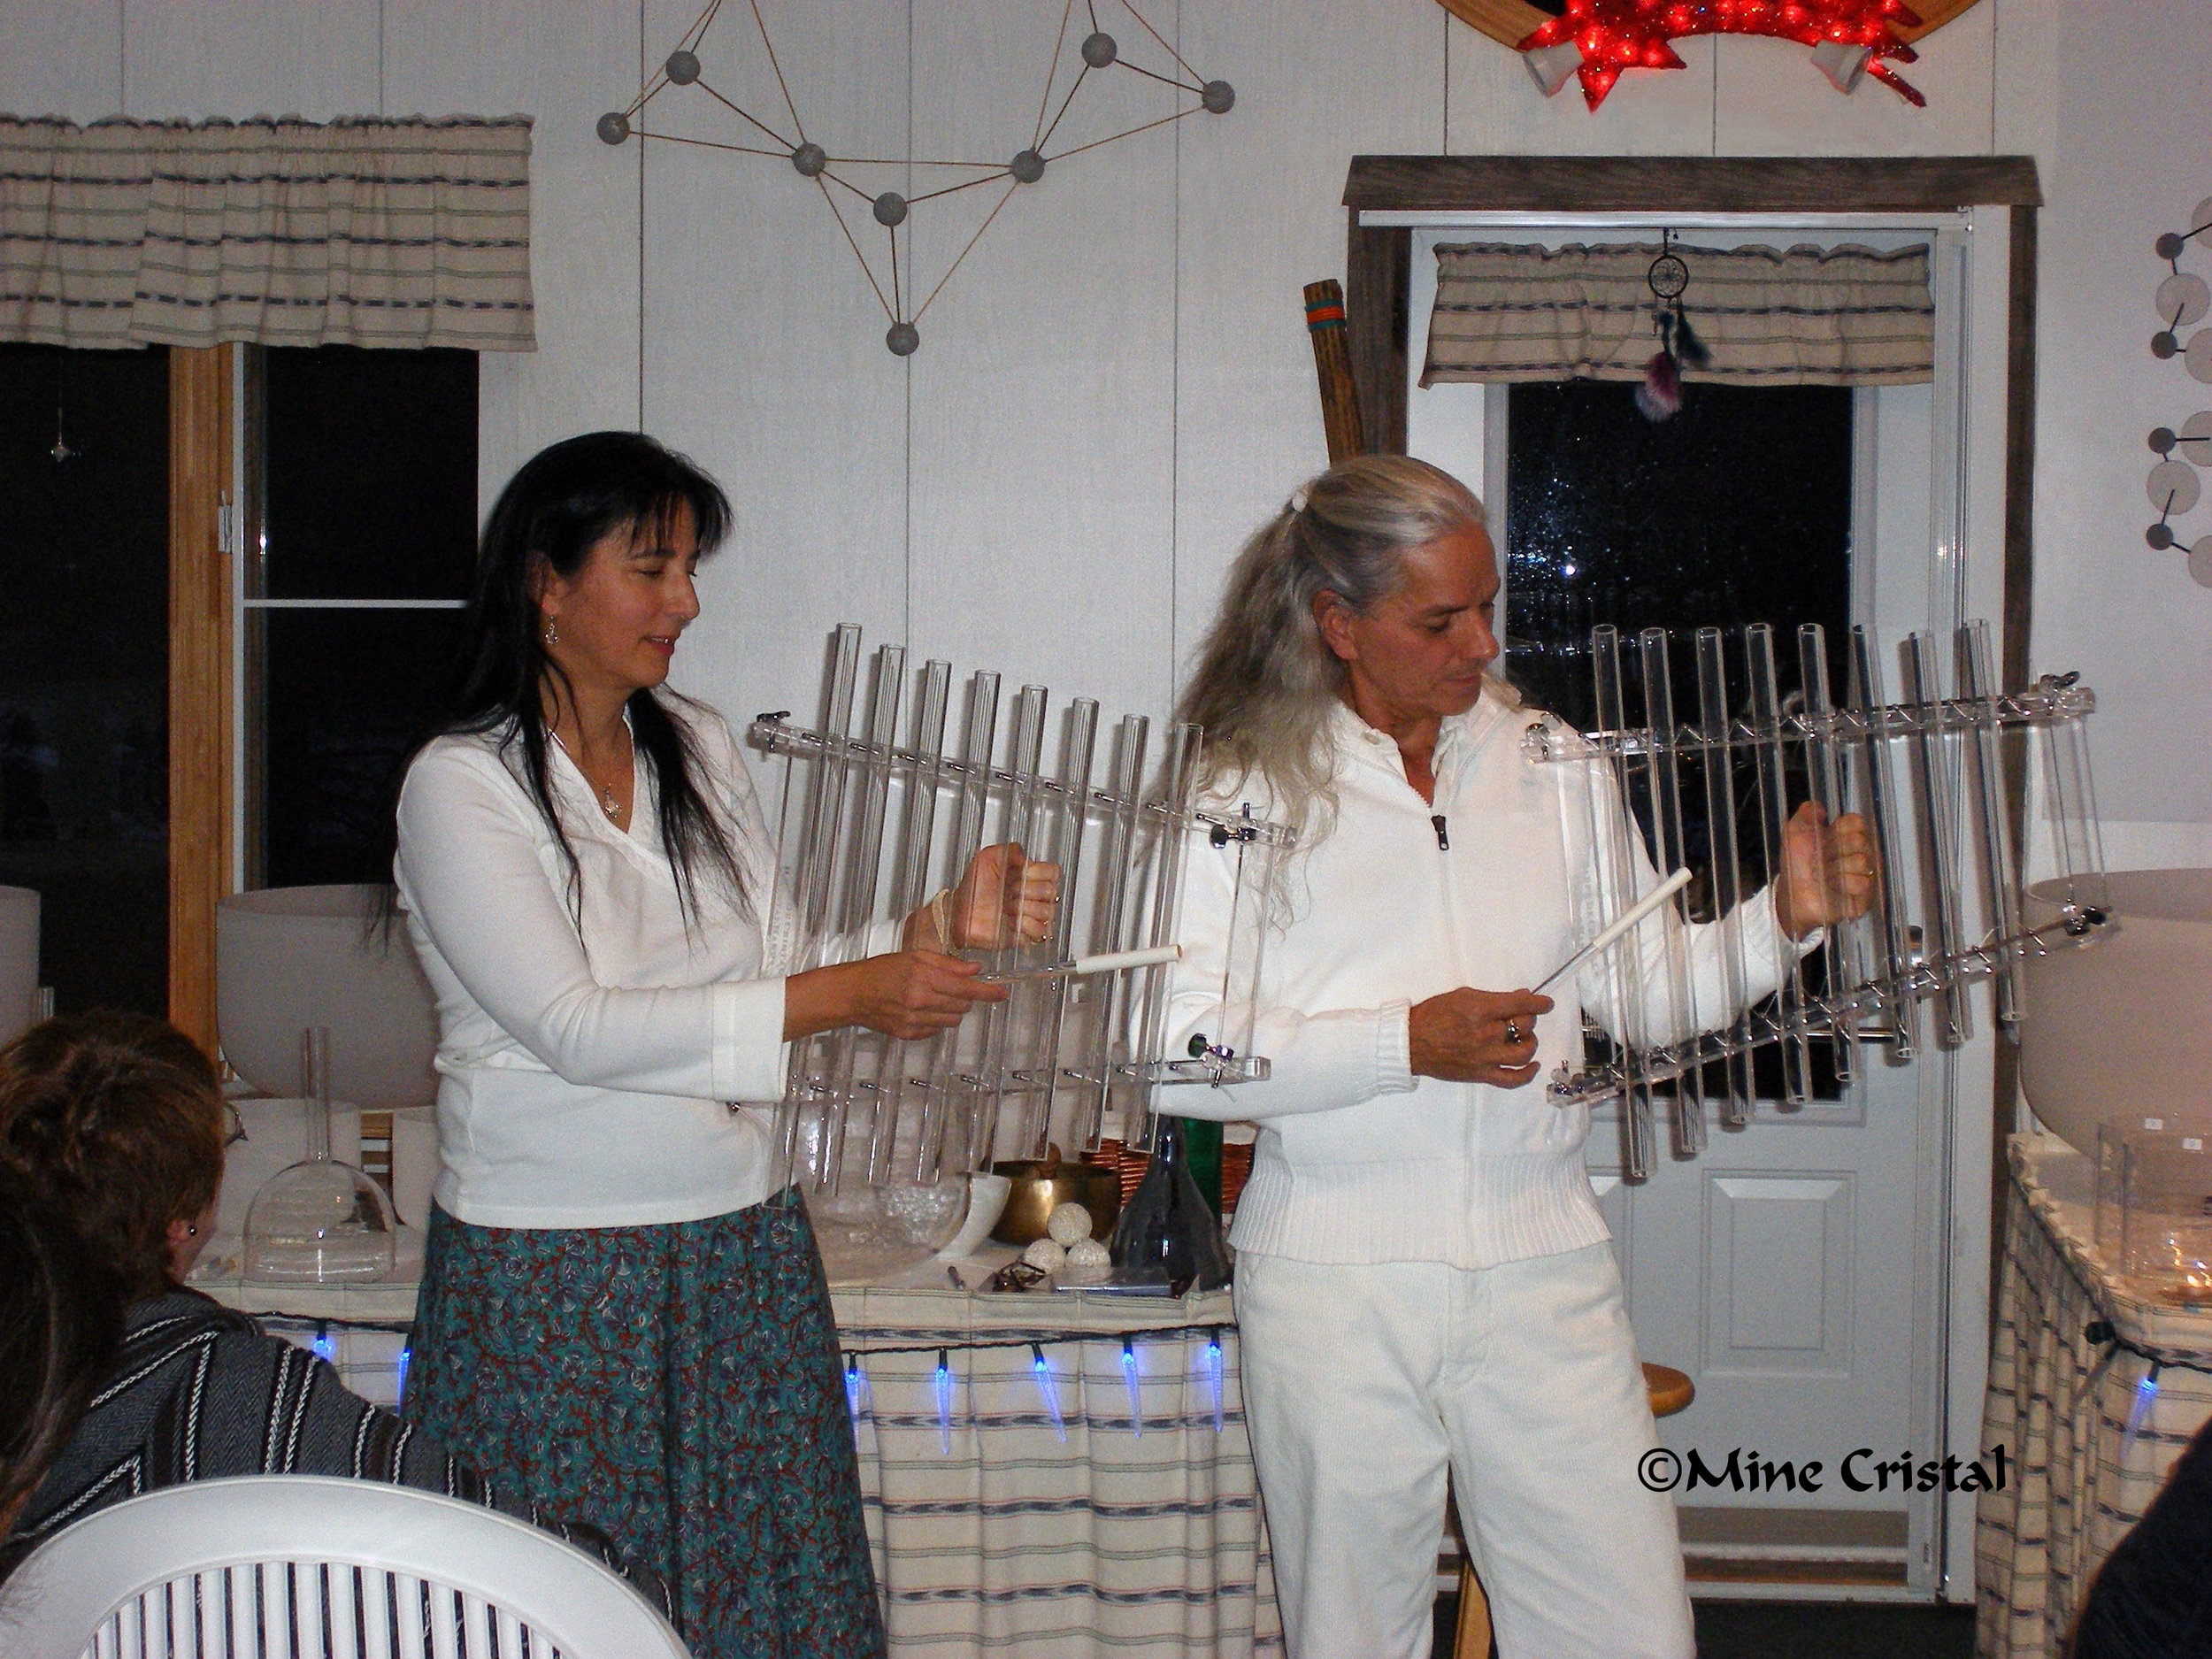 The Normands introduced their new   Quartzophone   instruments for the first time in 2011, at a   Sonomeditation  ™ concert. These instruments create waves of harmonious, cristalline vibrations, bringing peace and well-being to all who experience them!